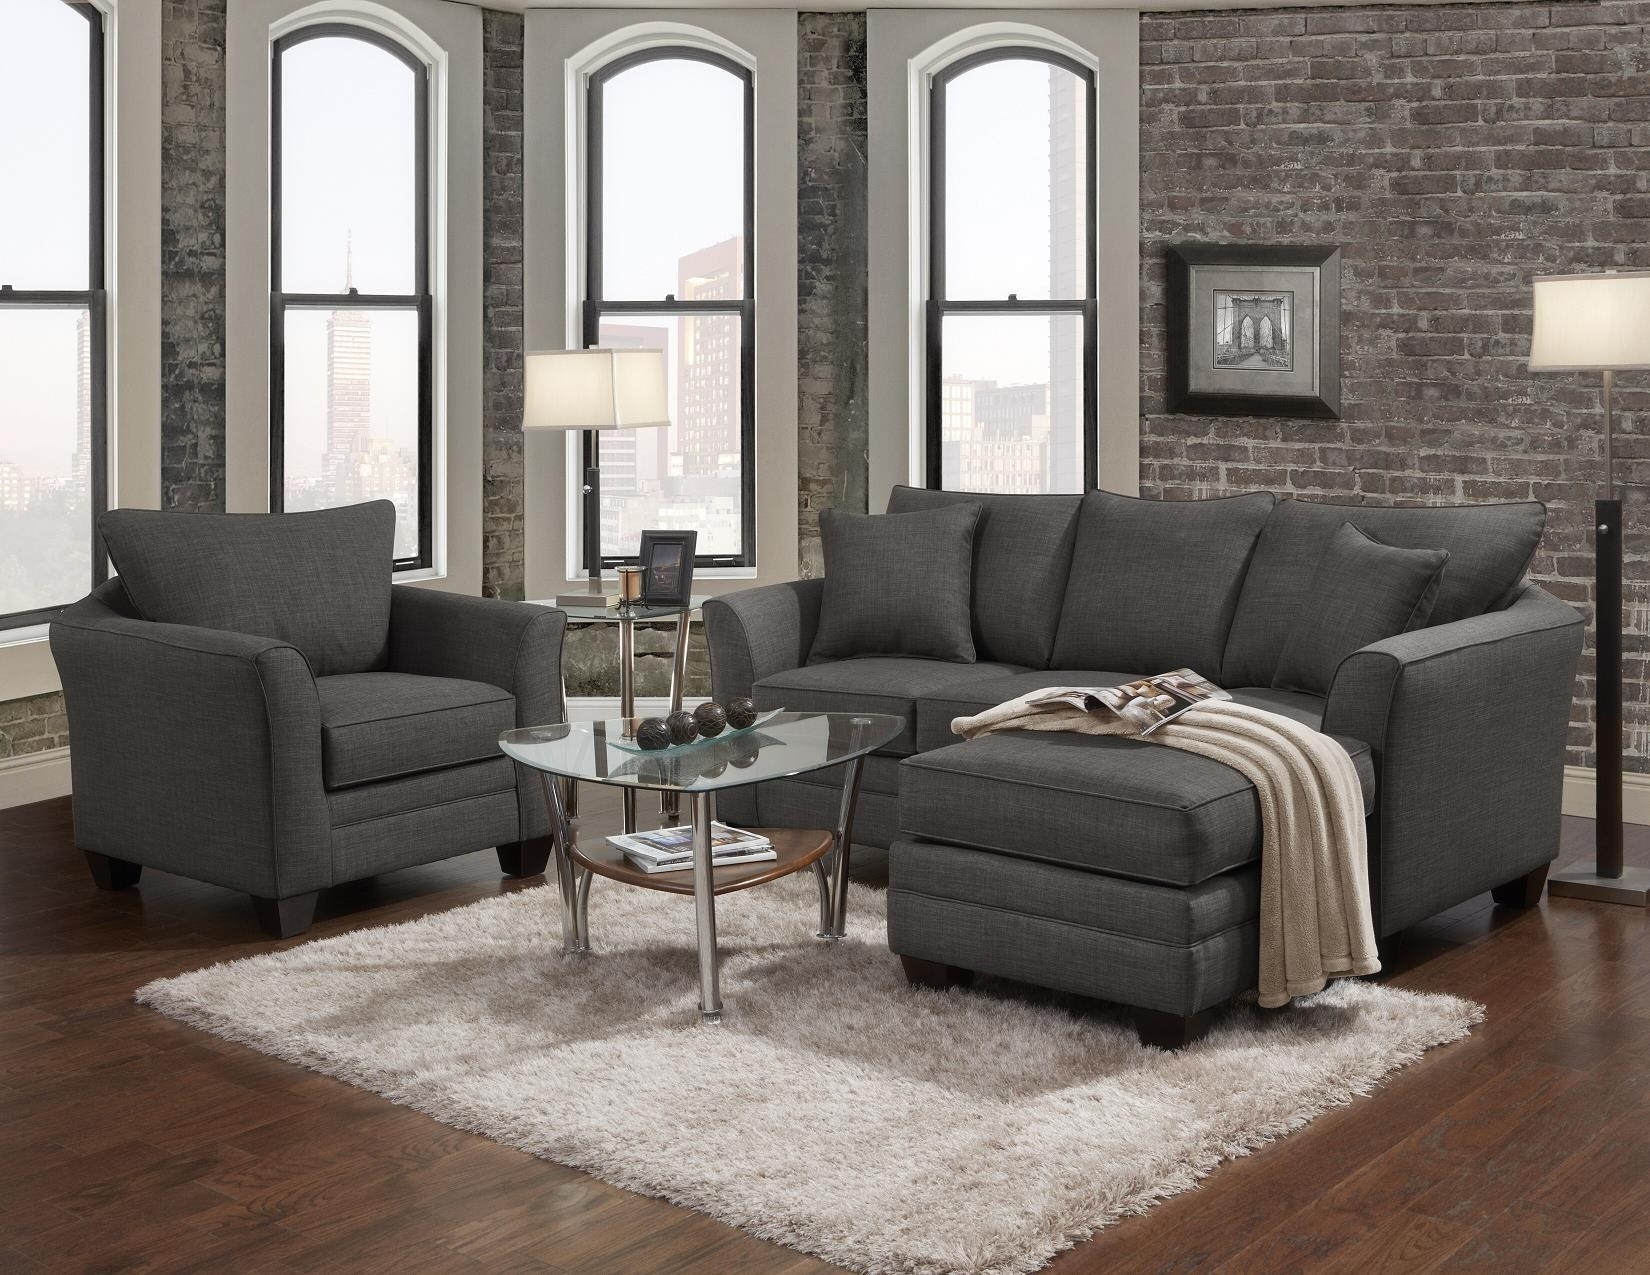 Transitional Sofa With Chaise Endj Henry | Wolf And Gardiner With London Ontario Sectional Sofas (View 5 of 10)